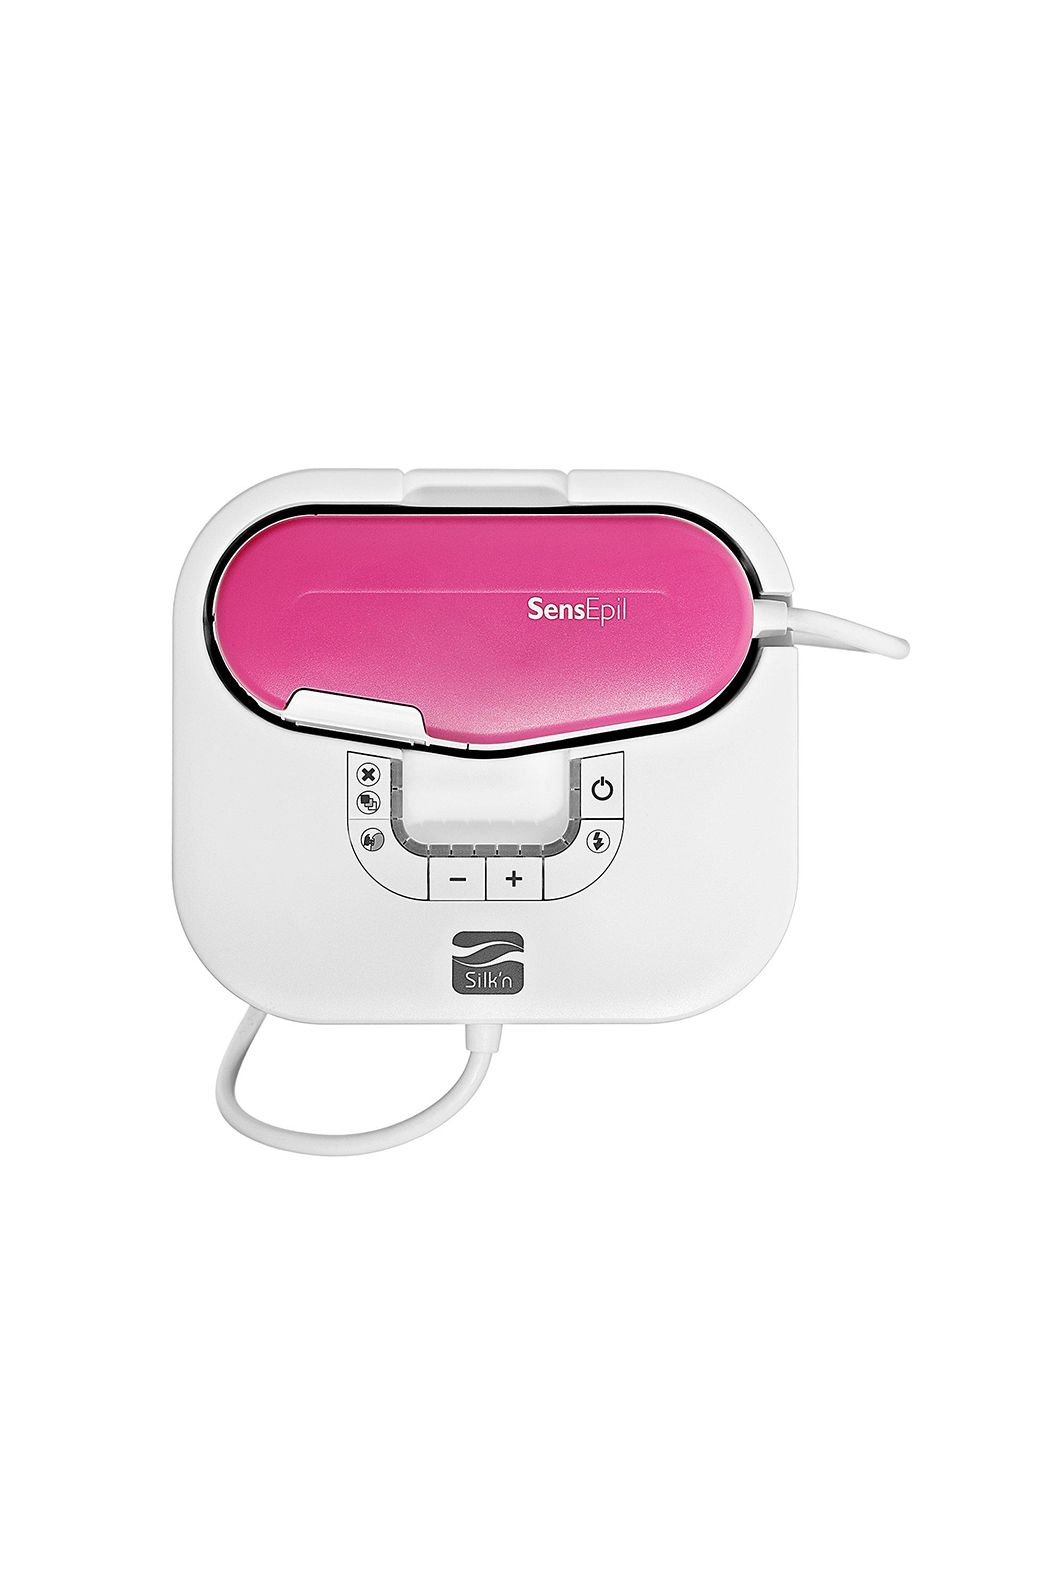 """<p>Lasers are an expensive and tricky territory, but at-home options can save you from regular trips to a laser hair removal specialist. SensEpil's FDA-approved technology was designed to be as painless as possible, with a hand-held device that allows you to control exactly which areas you want to treat.</p><p><strong>Silk'n SensEpil Hair Removal Device, $199&#x3B; <a href=""""https://www.silkn.com/buy-sensepil/?avad=113005_fbe4f723"""" target=""""_blank"""">silkn.com</a>. </strong></p>"""